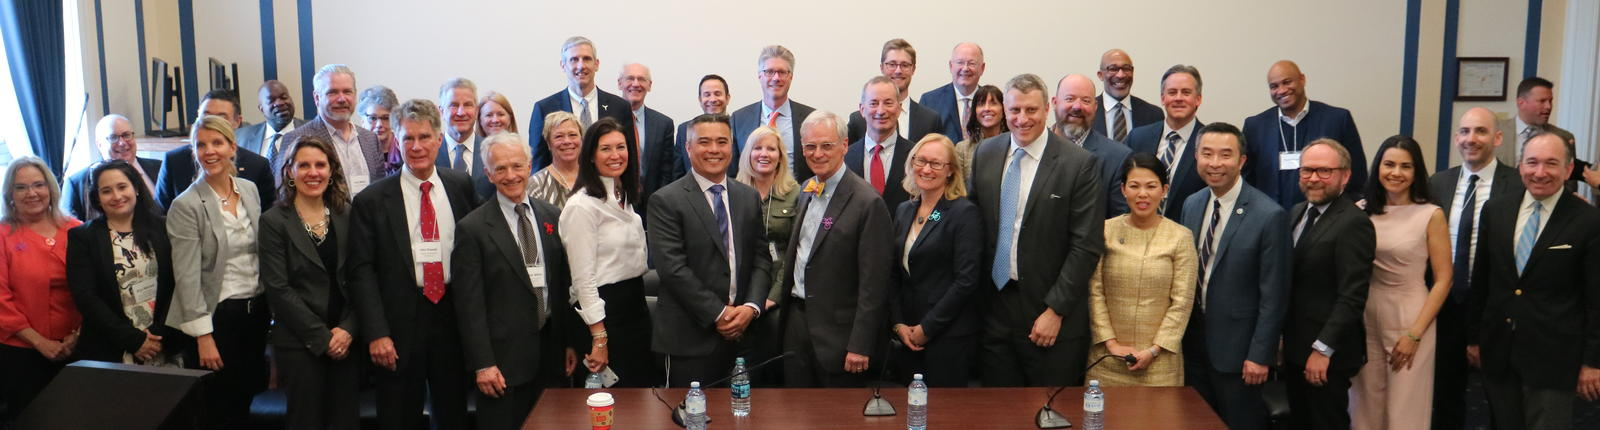 Portland Business Alliance - 2019 Washington D.C. delegation